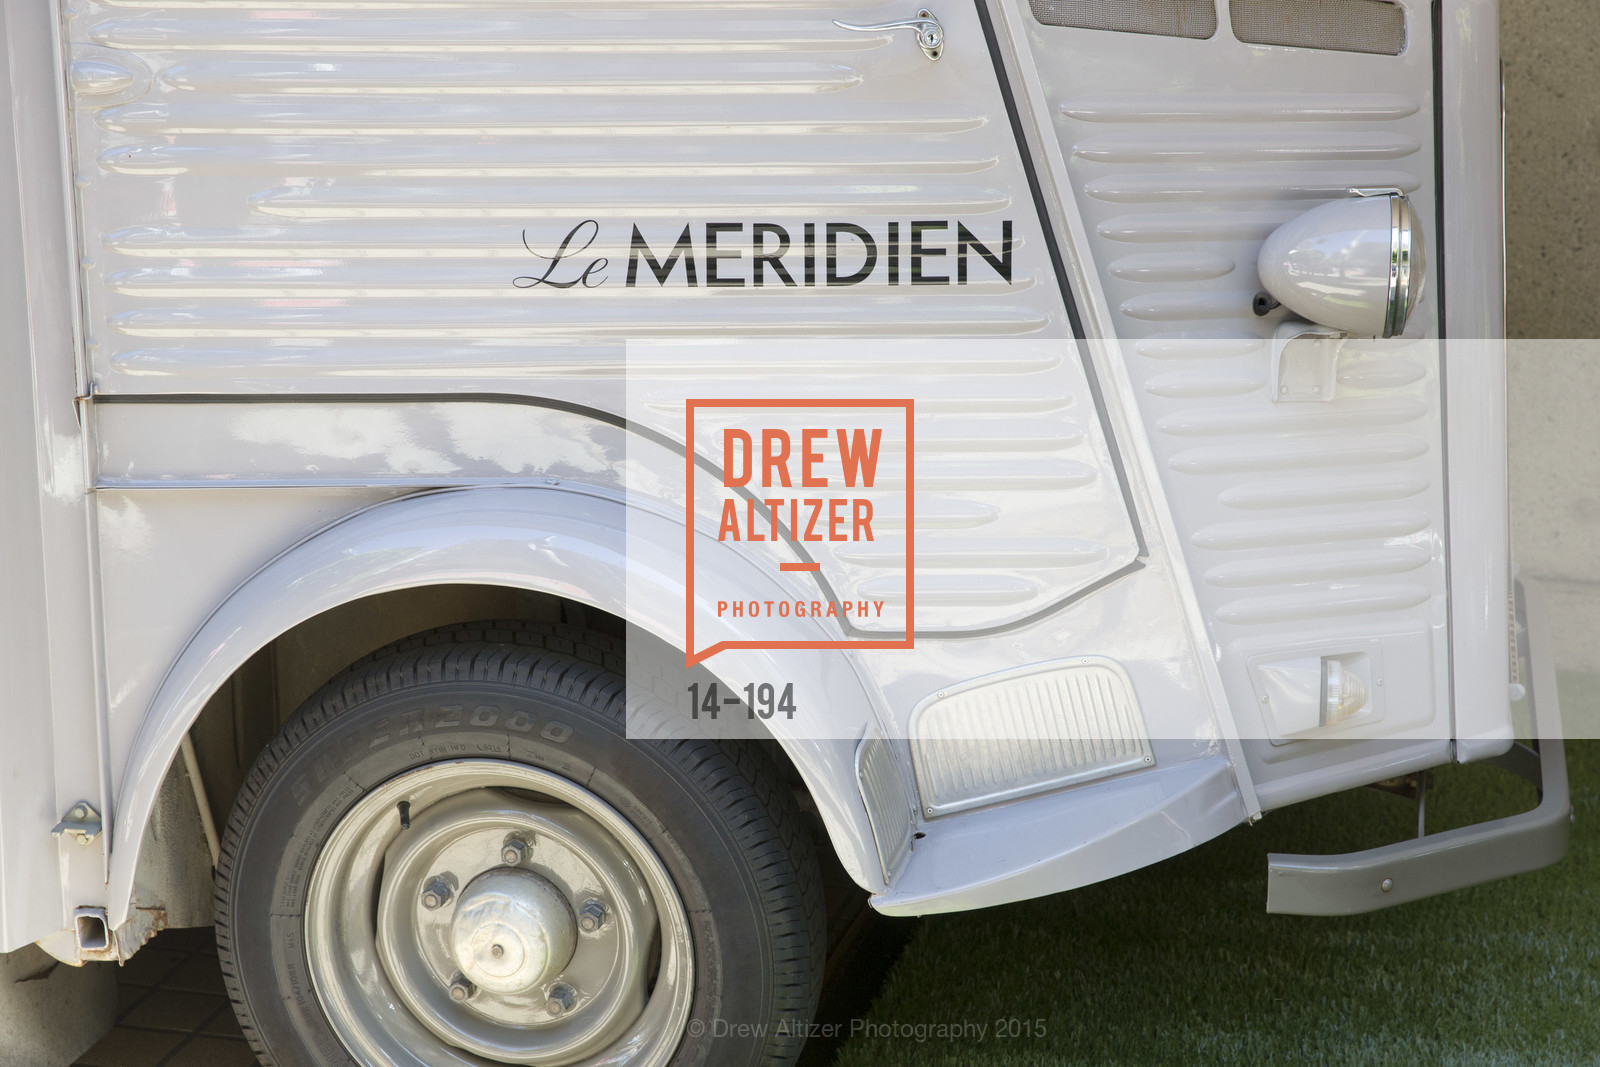 Extras, Le Meridien Photoshoot, June 23rd, 2015, Photo,Drew Altizer, Drew Altizer Photography, full-service agency, private events, San Francisco photographer, photographer california